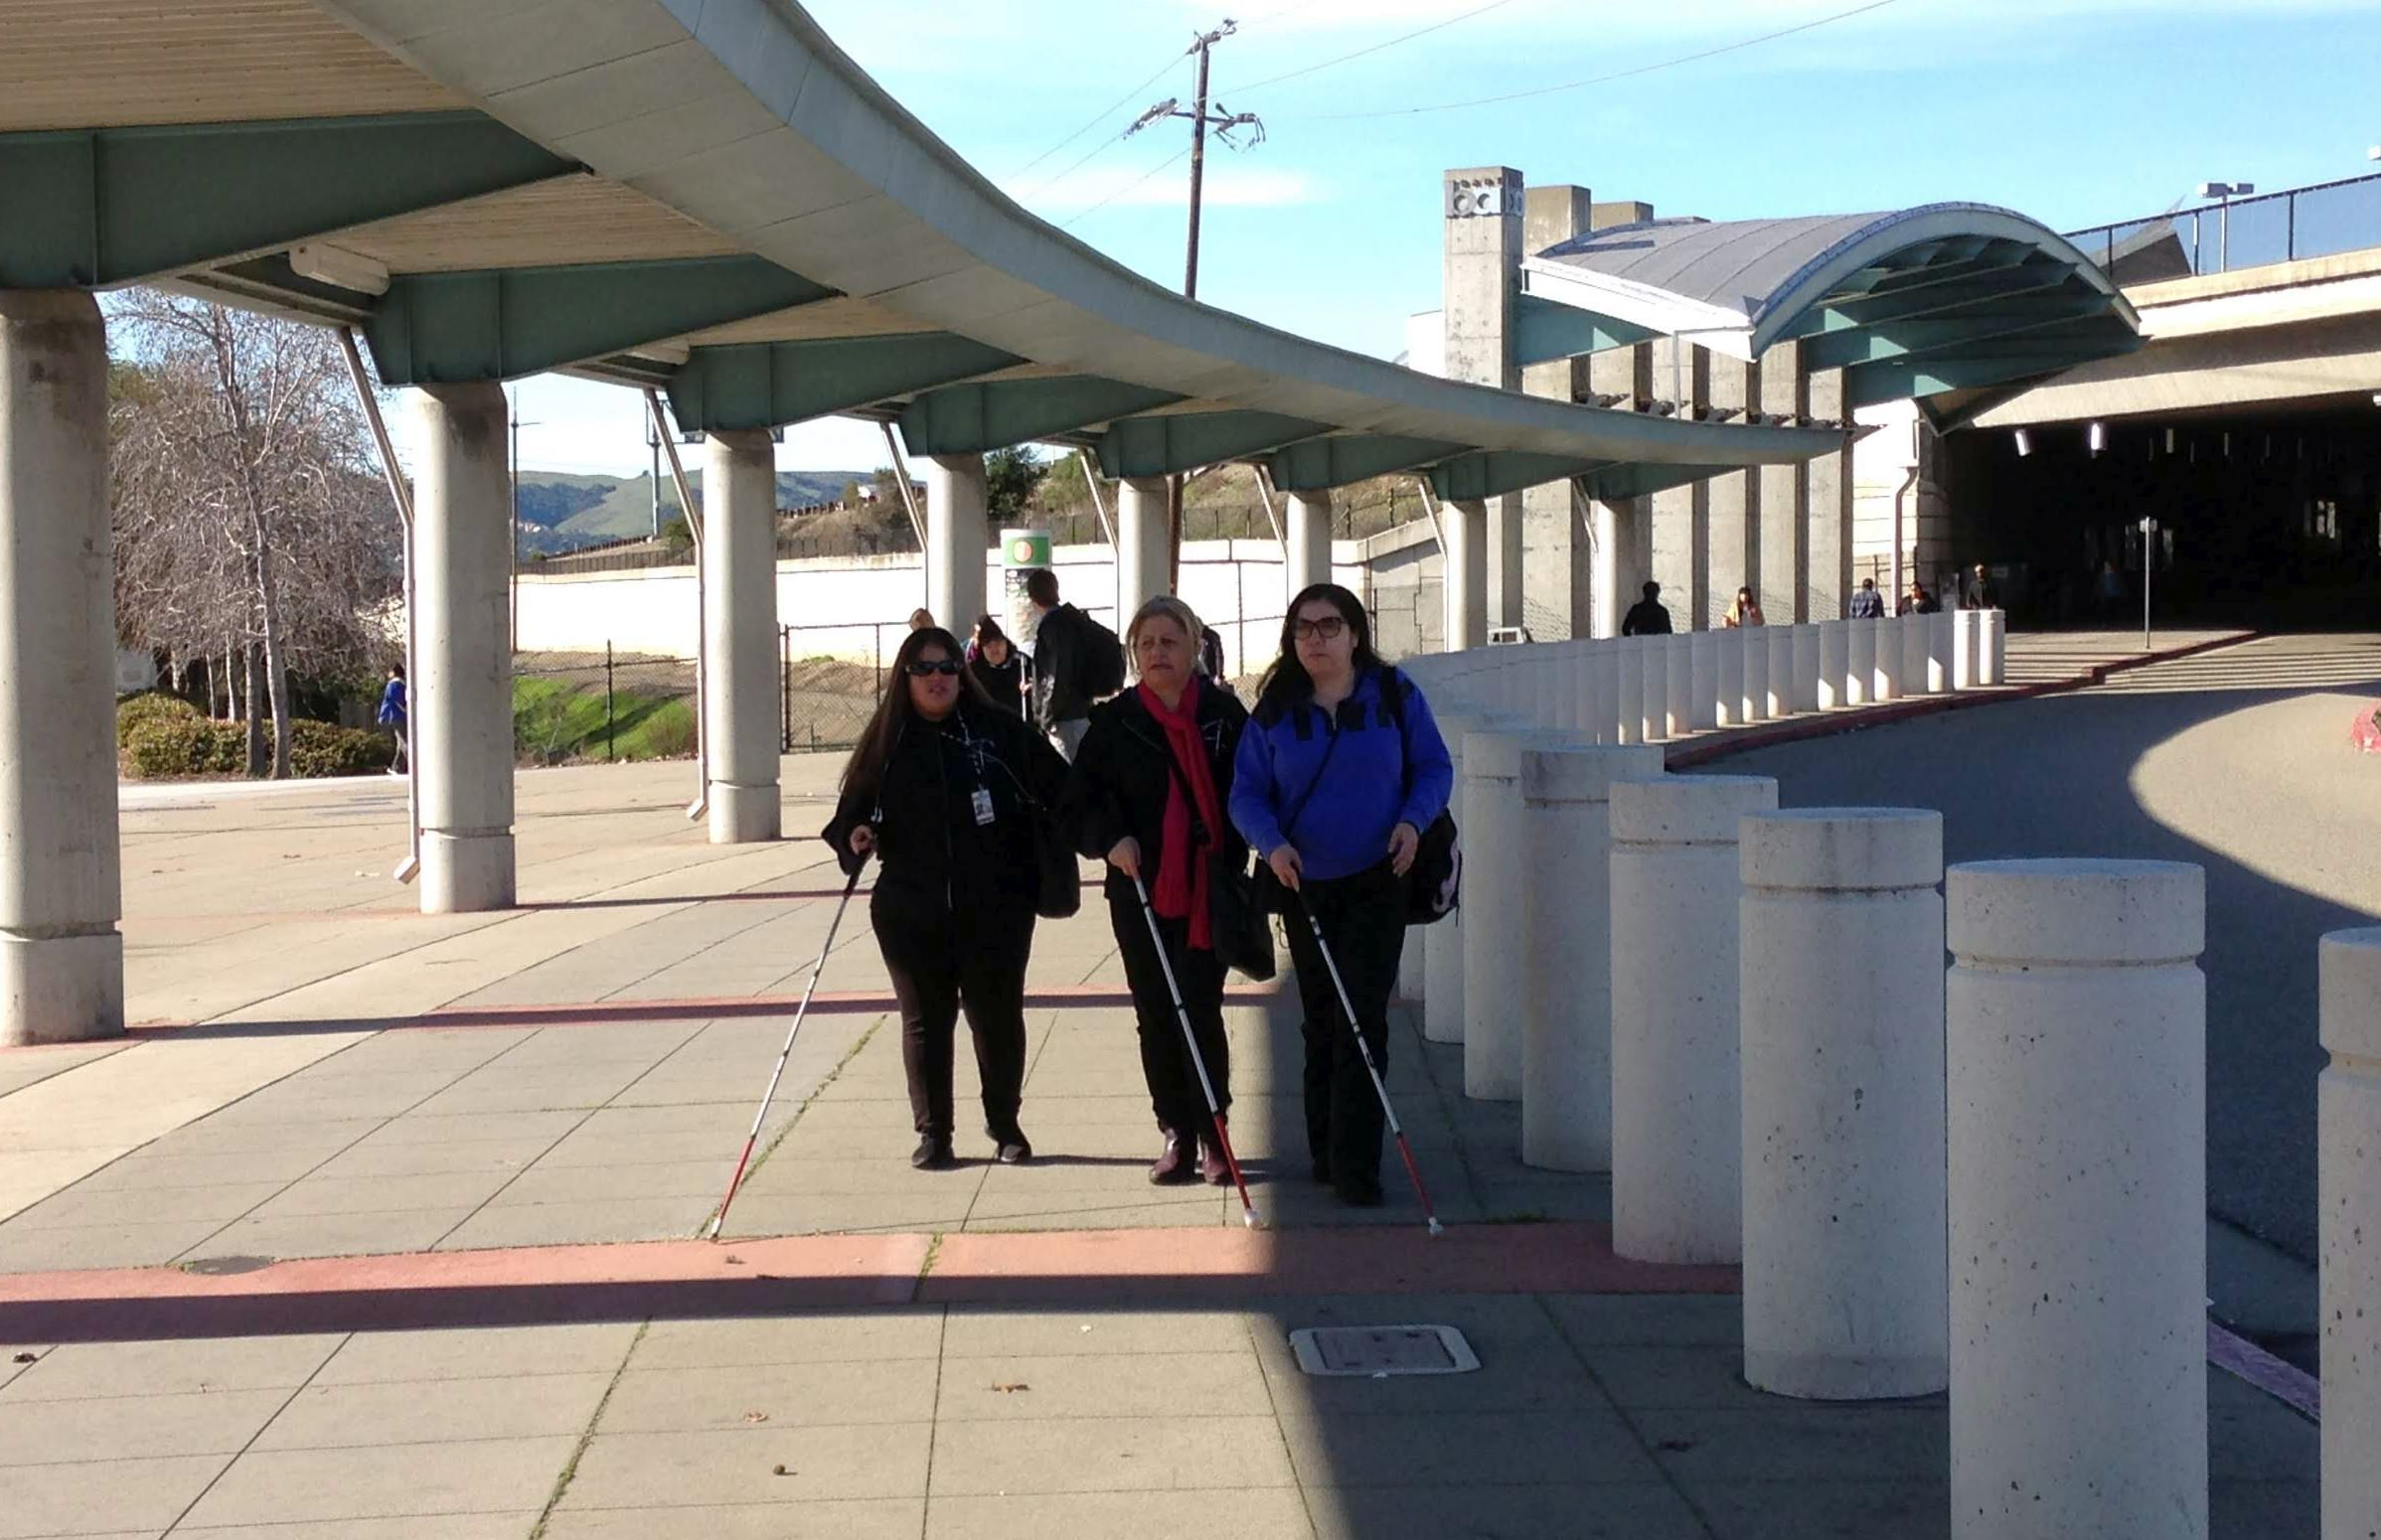 Women who are blind using white canes to travel on a BART platform.